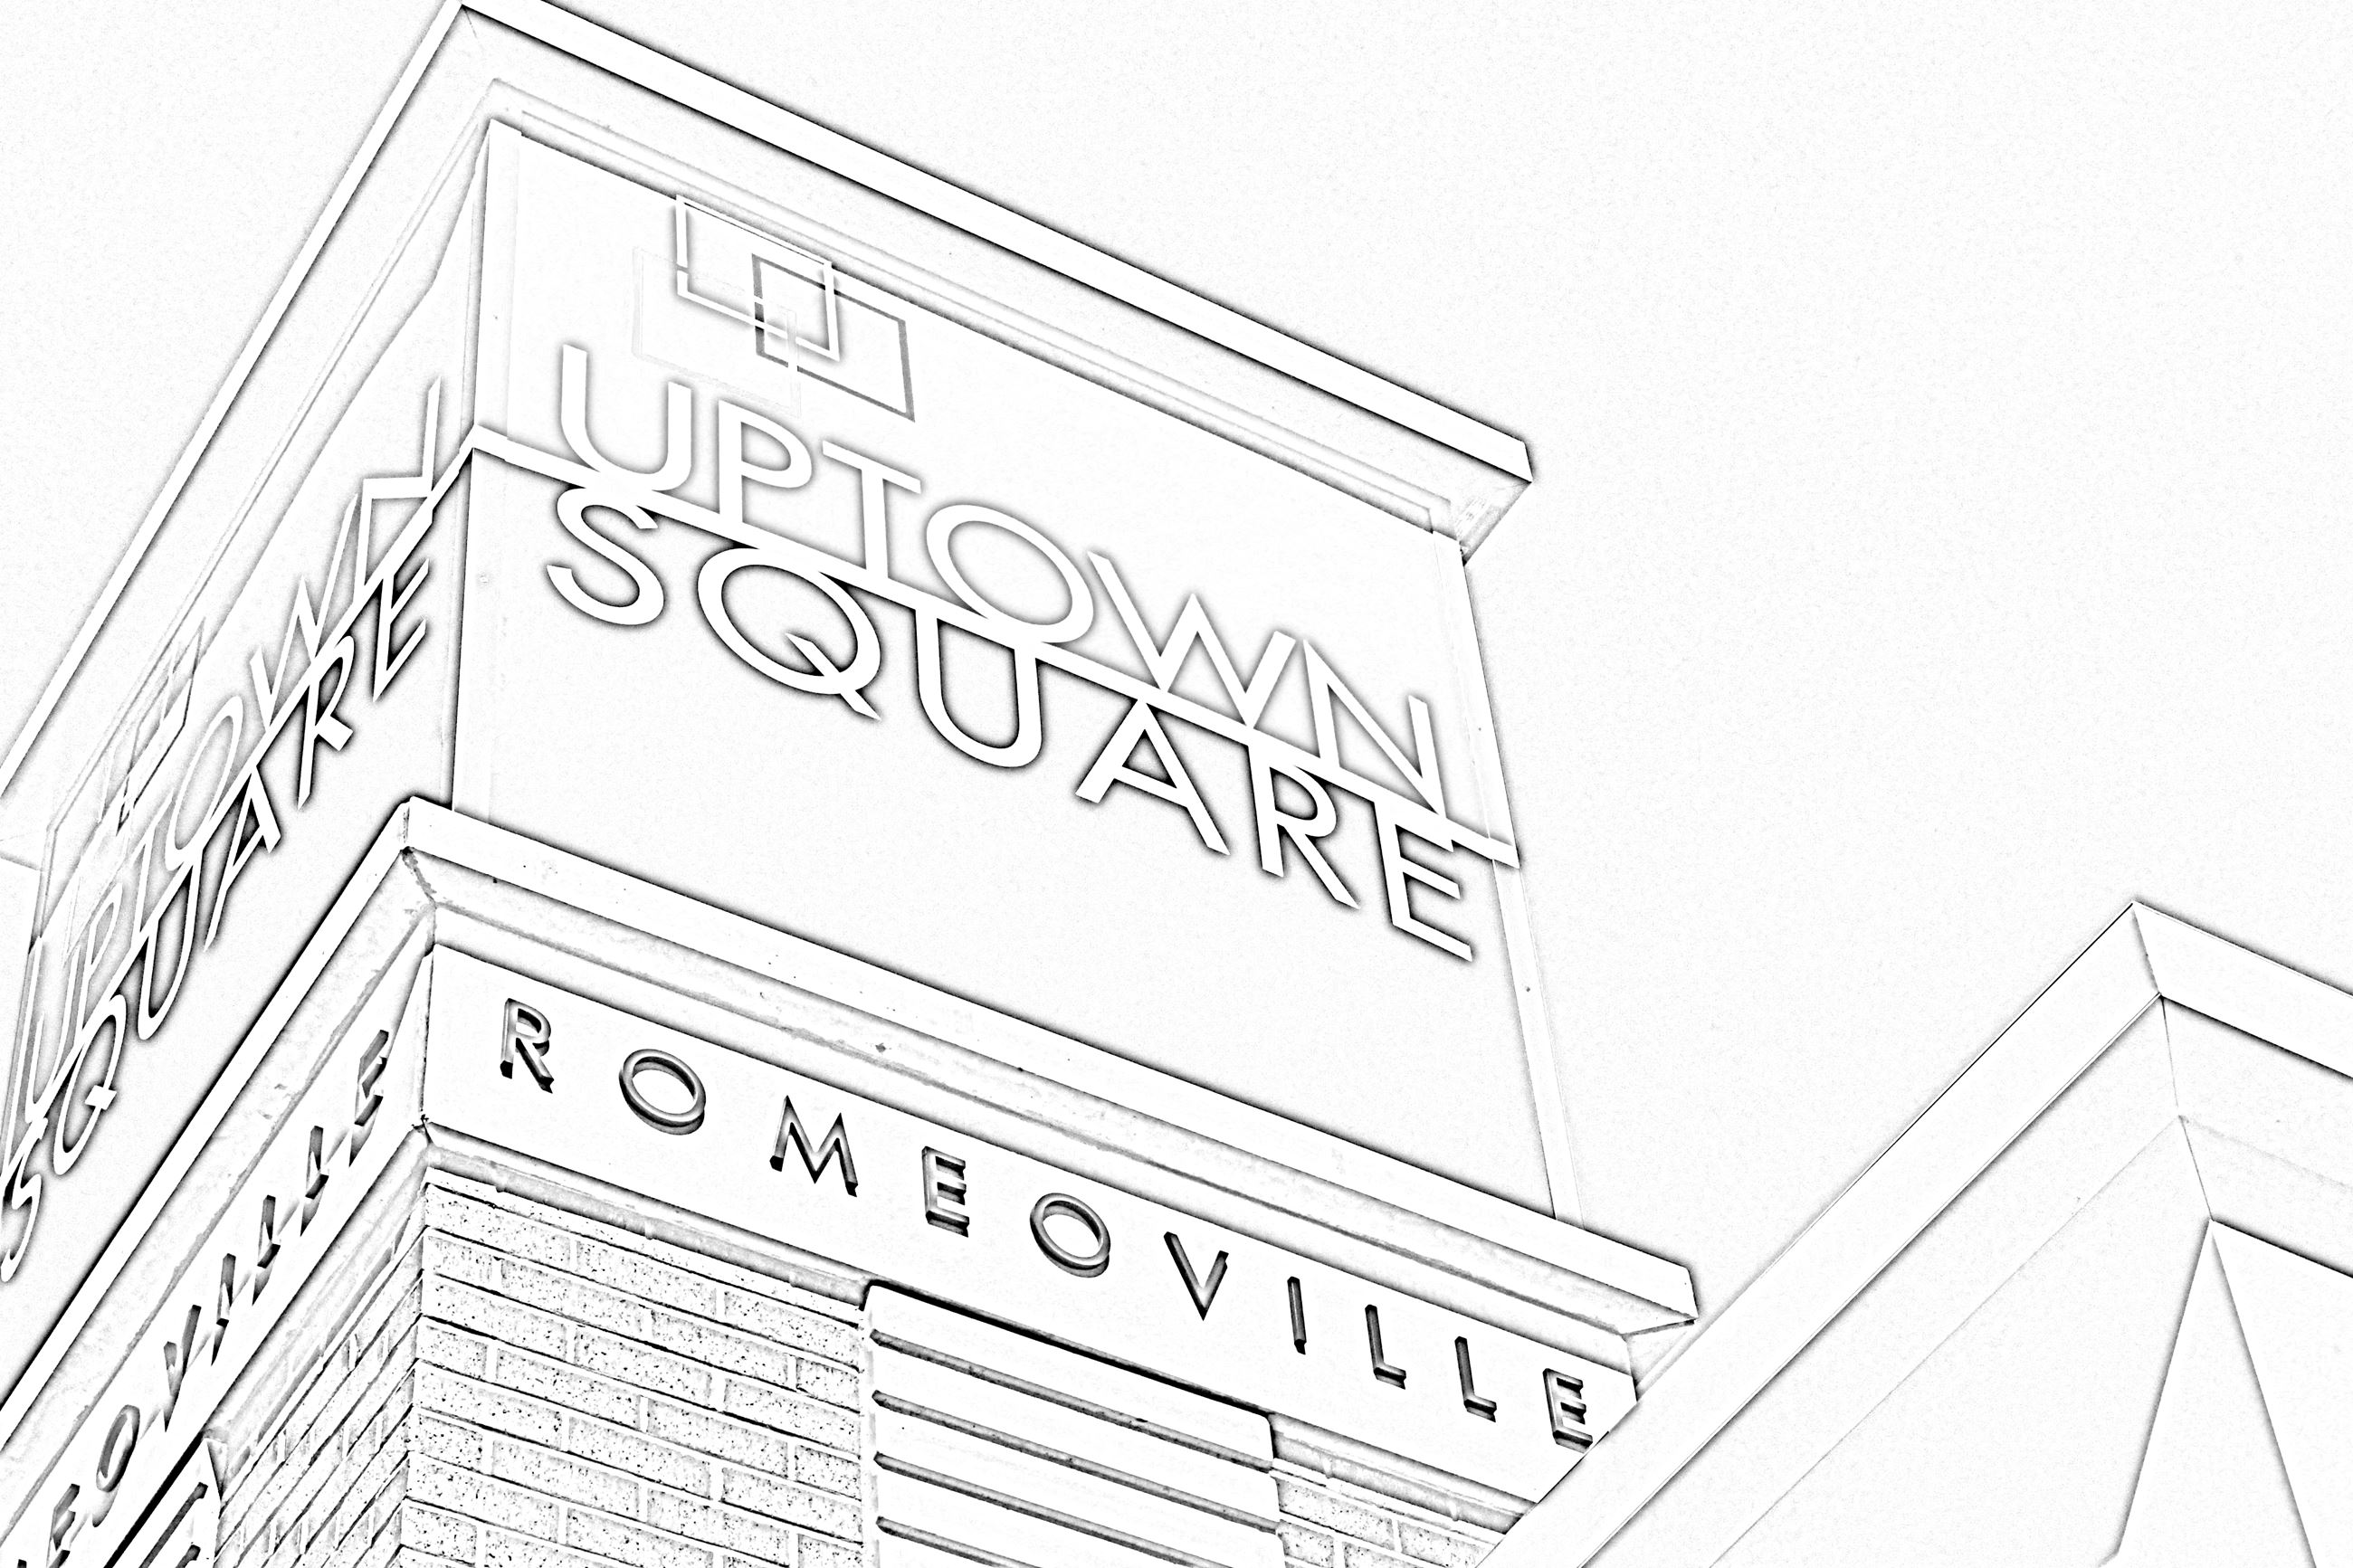 Uptown Square Coloring Page